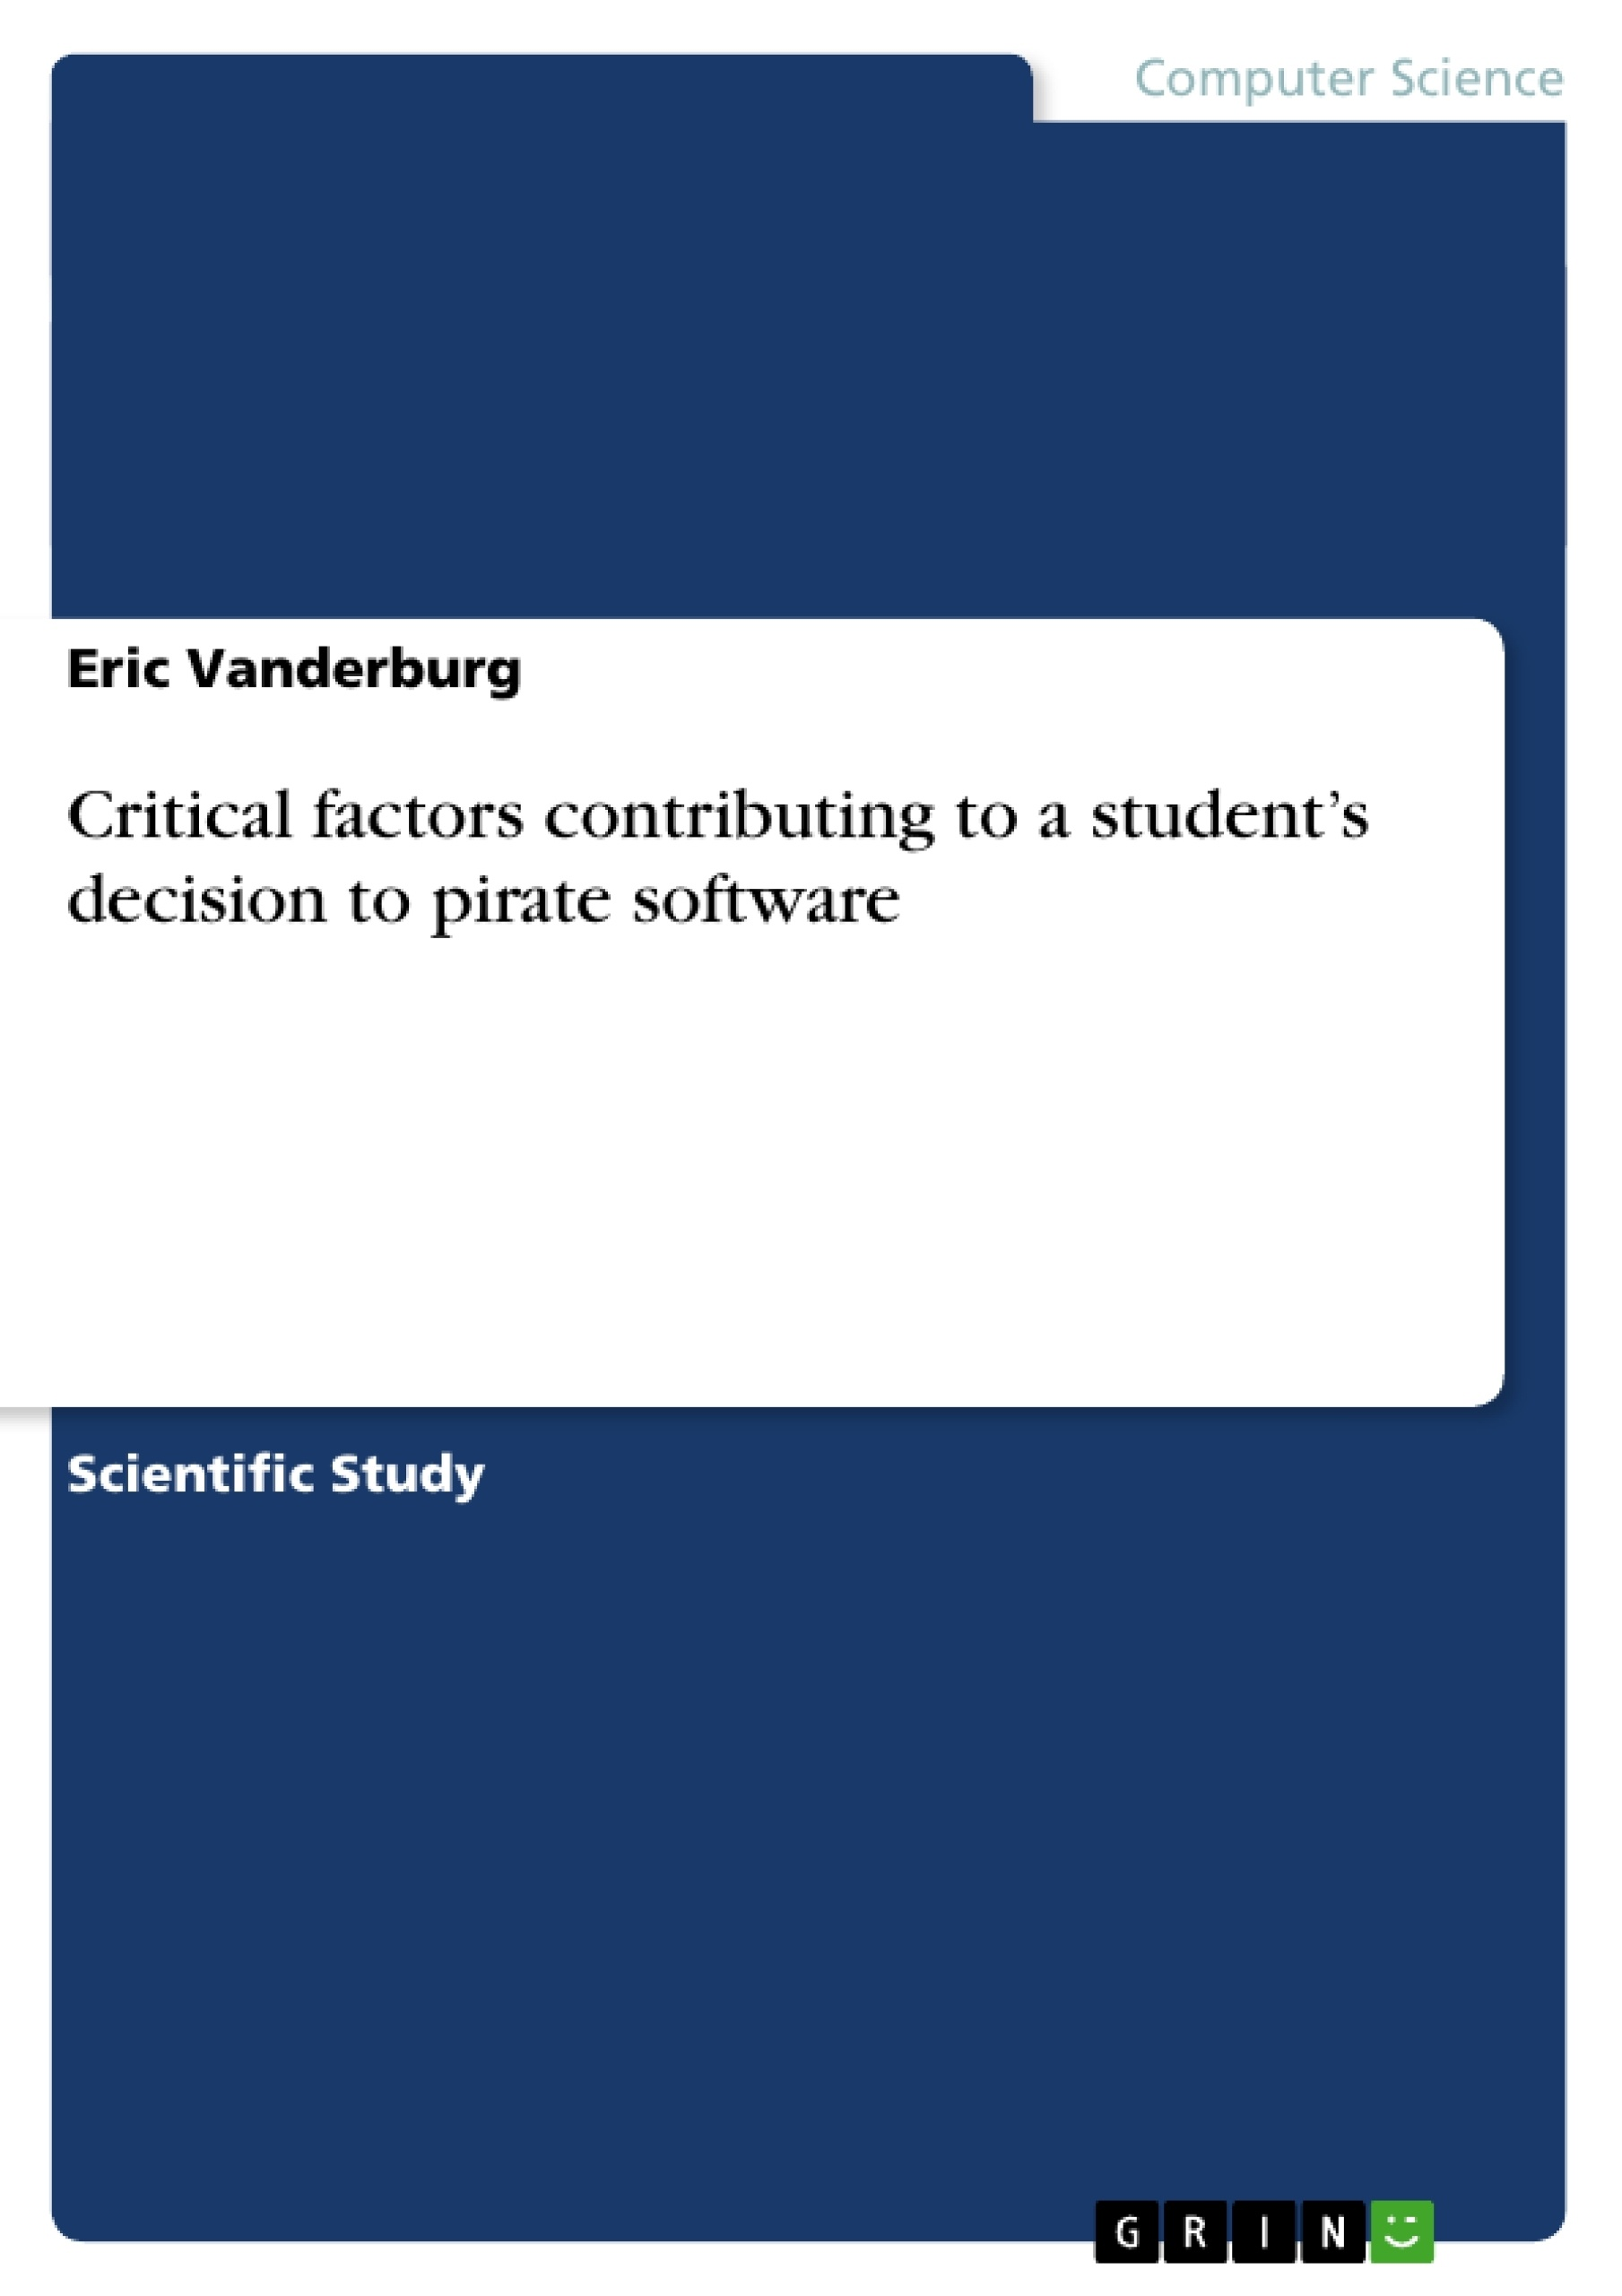 Title: Critical factors contributing to a student's decision to pirate software